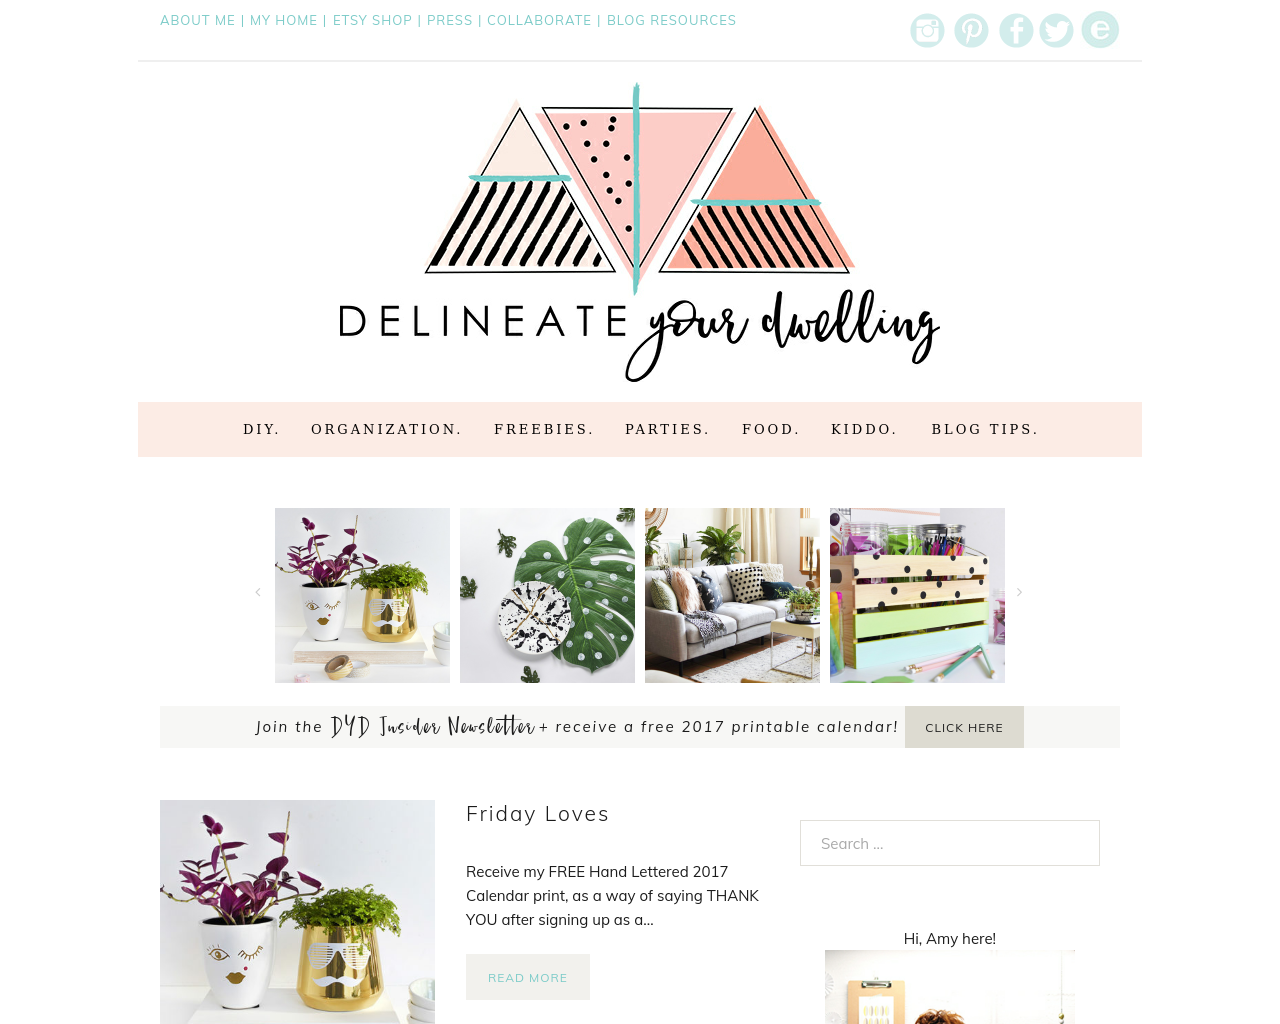 Delineate-Your-Dwelling-Advertising-Reviews-Pricing